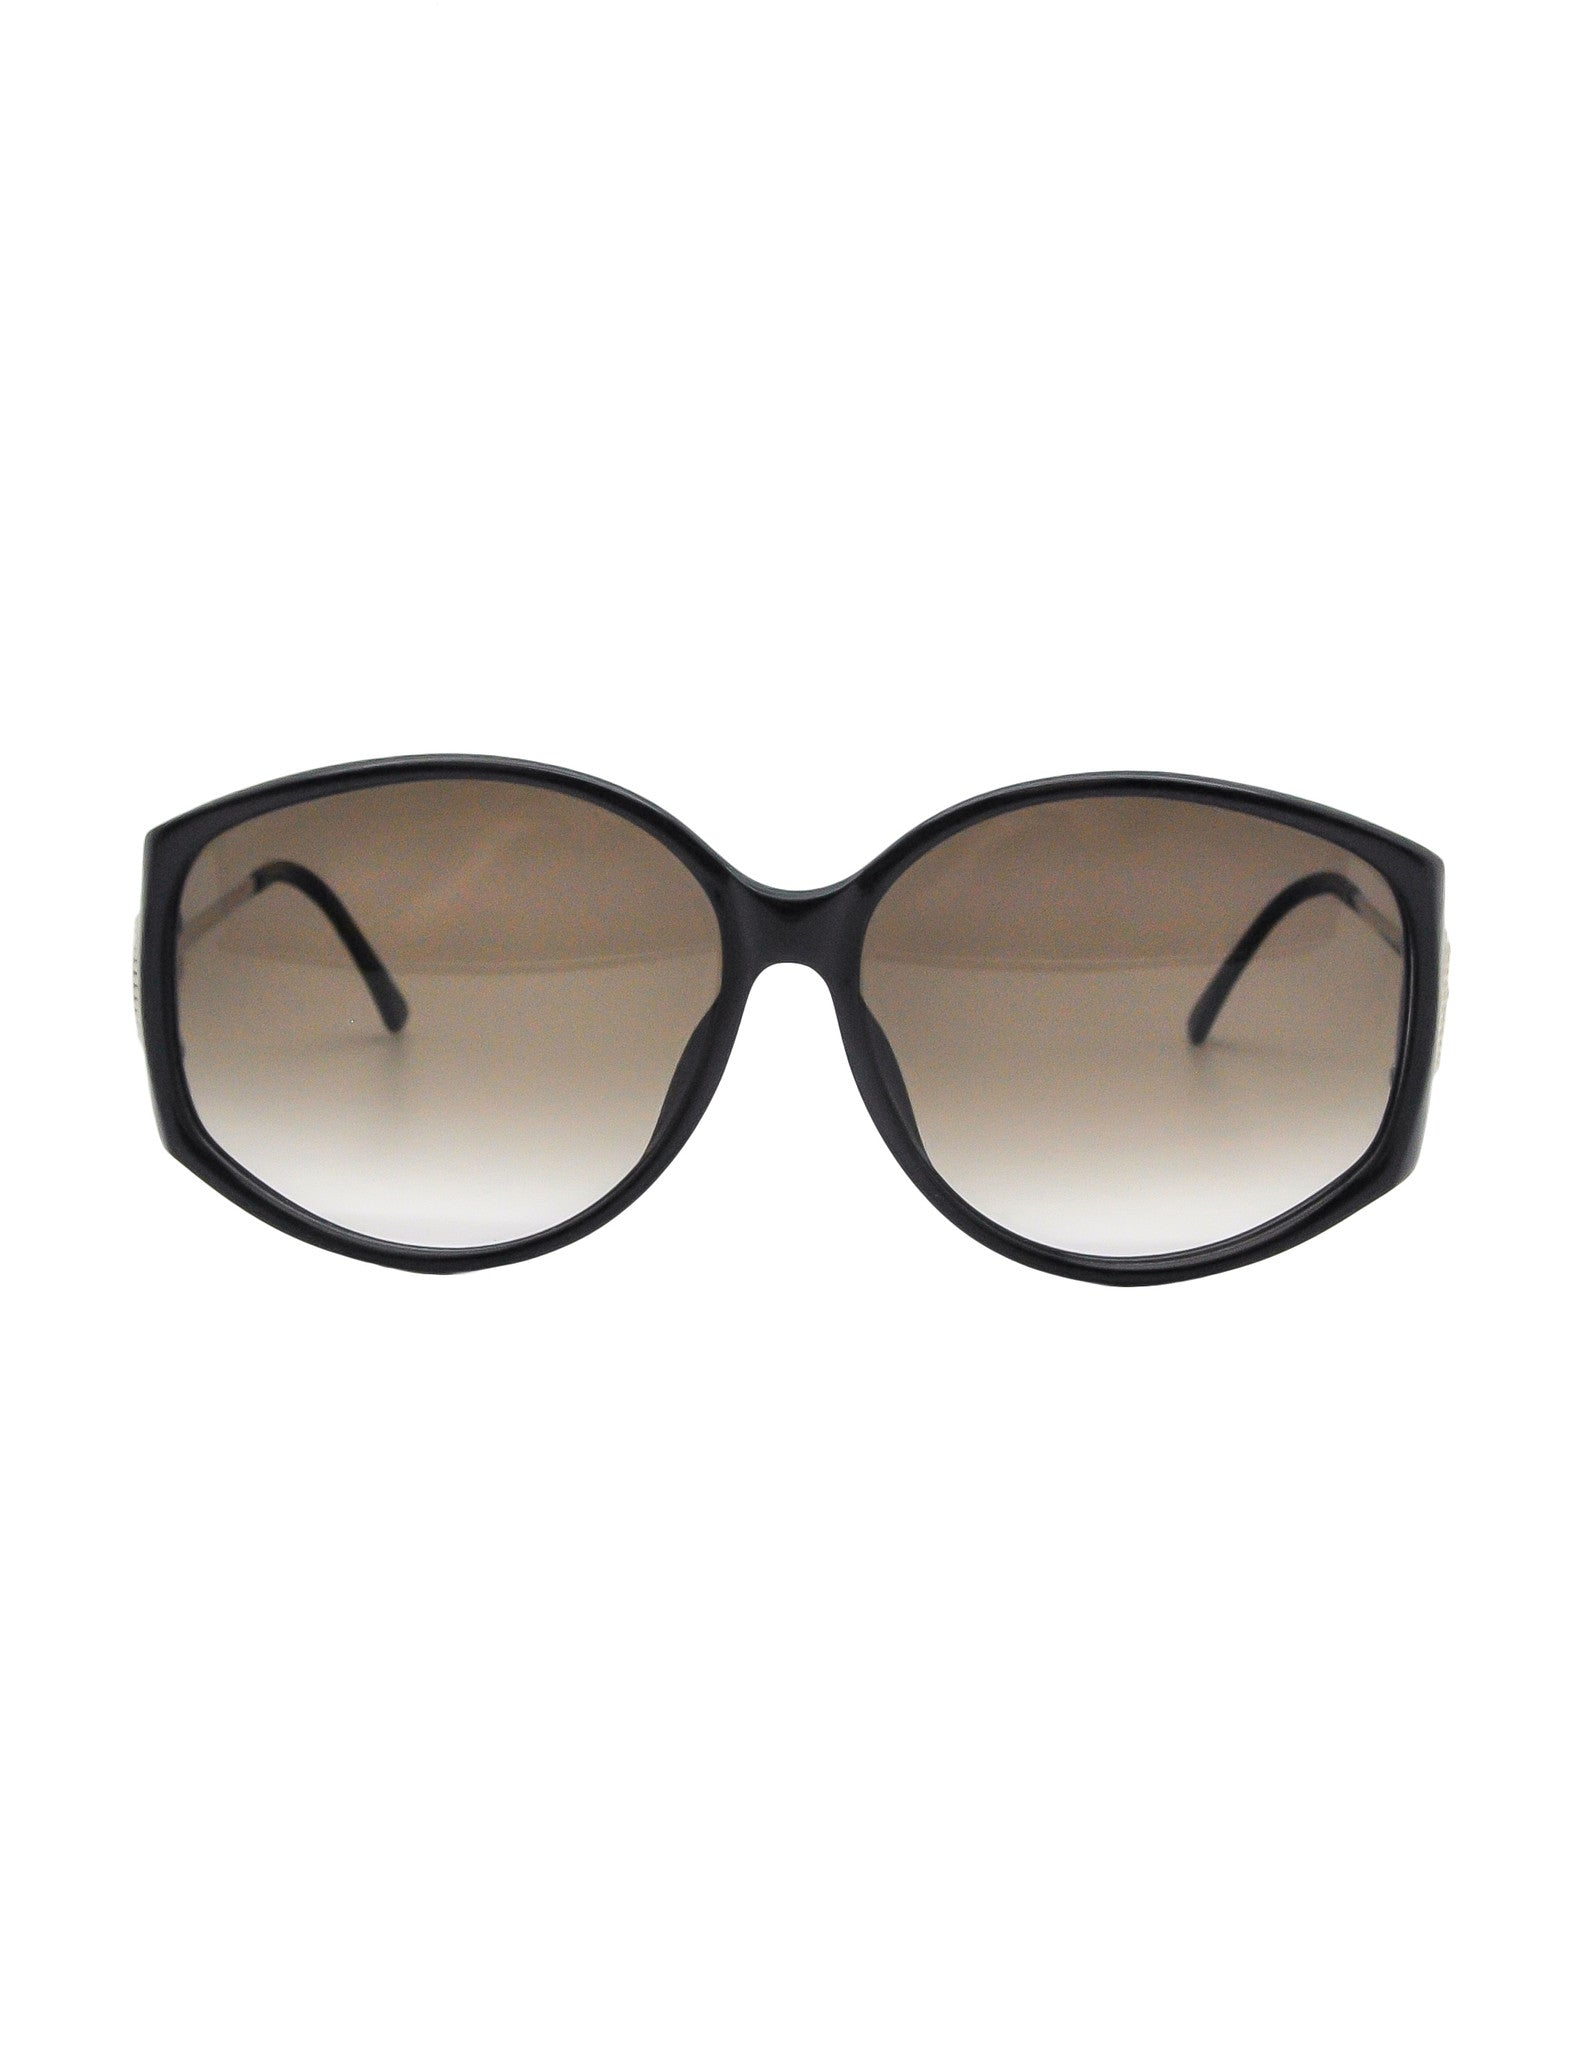 Christian Dior Vintage Black and Gold Sunglasses 2758 - Amarcord Vintage Fashion  - 1